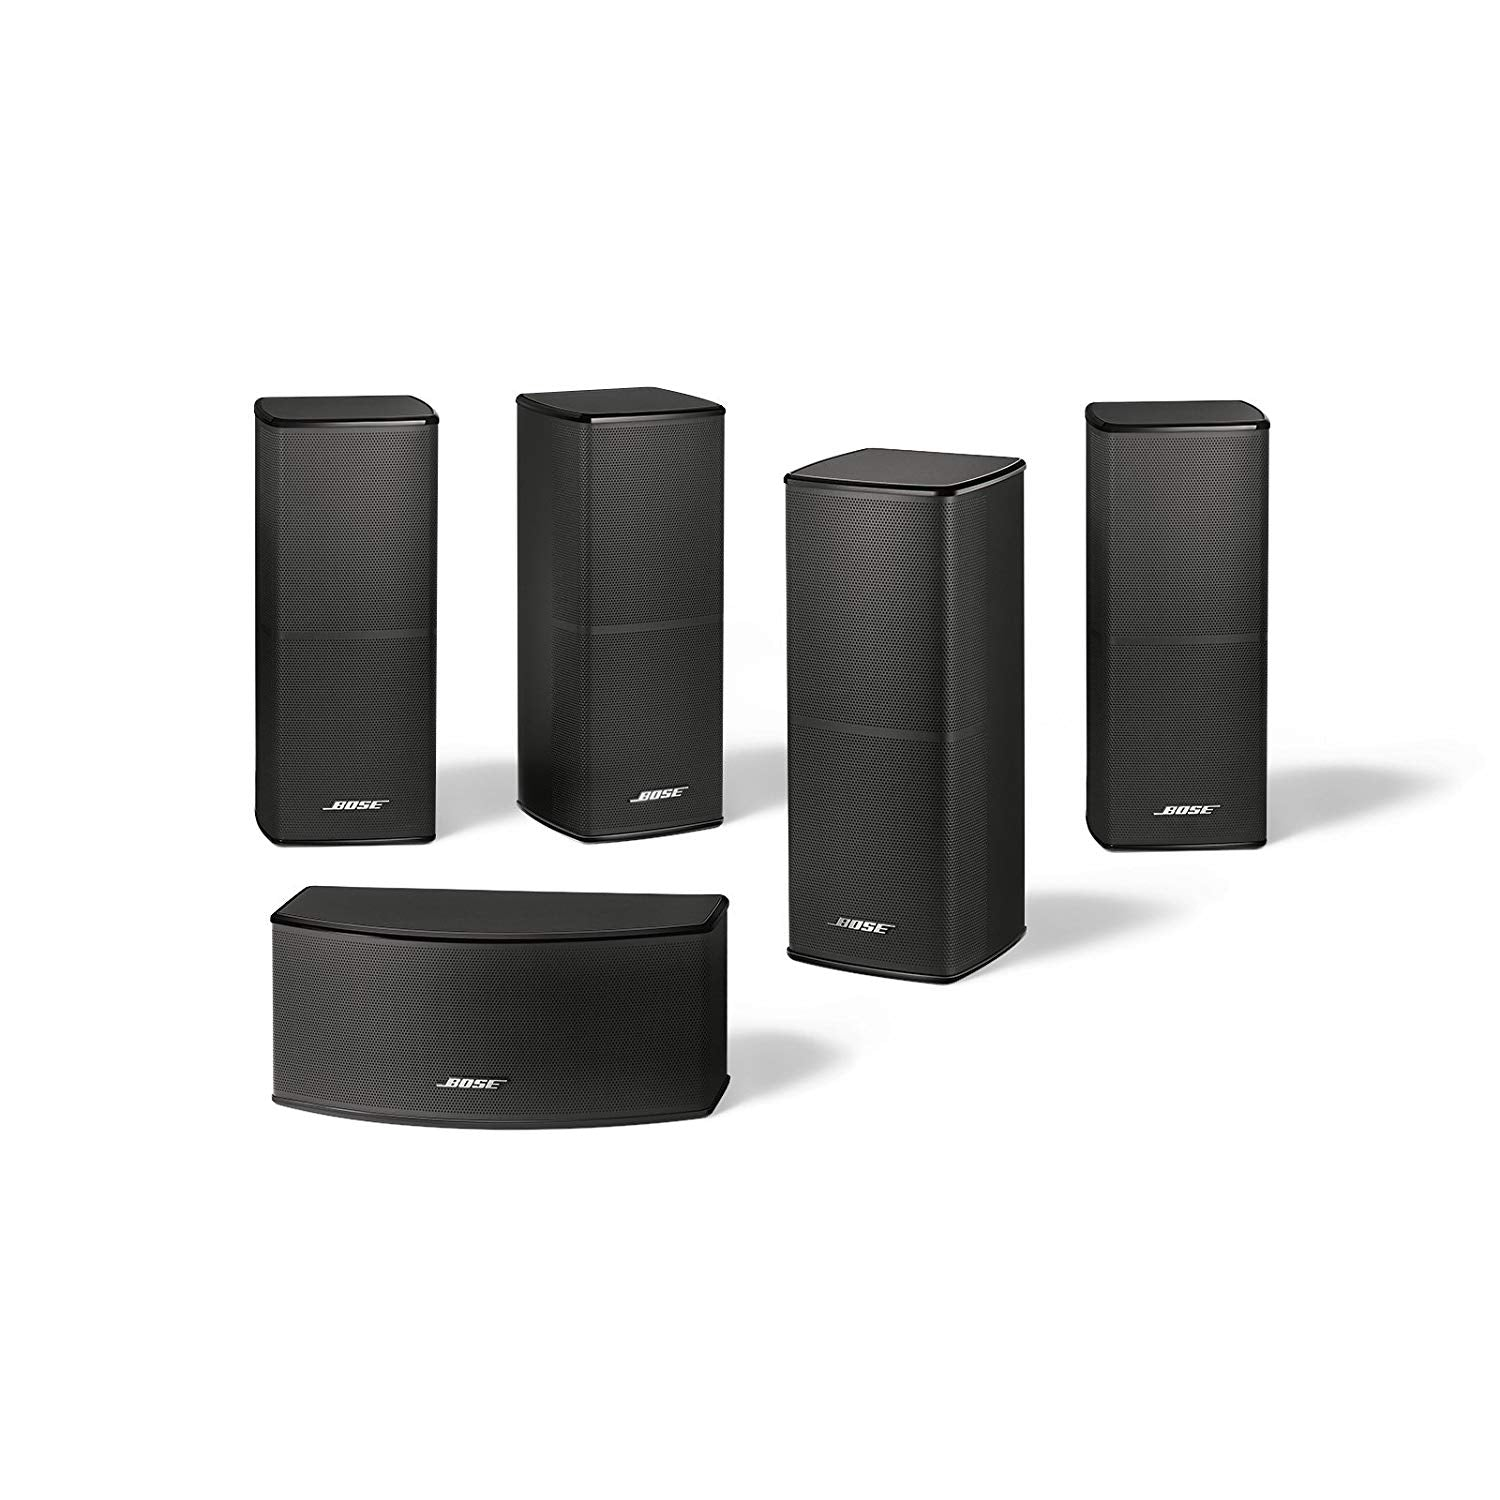 Bose Lifestyle 600 - Home Theatre System - Black, Bose, Home Theatre in a Box - AVStore.in